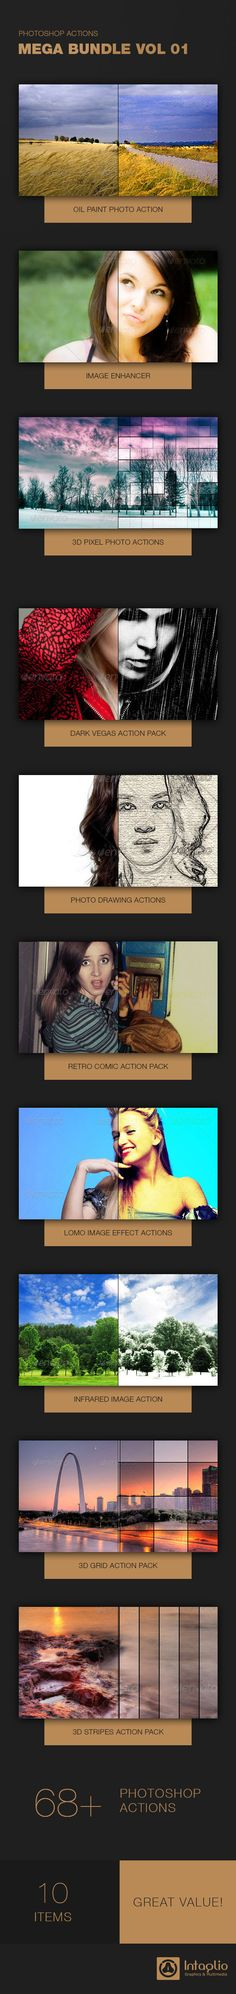 Photoshop Actions Mega Bundle Vol 1